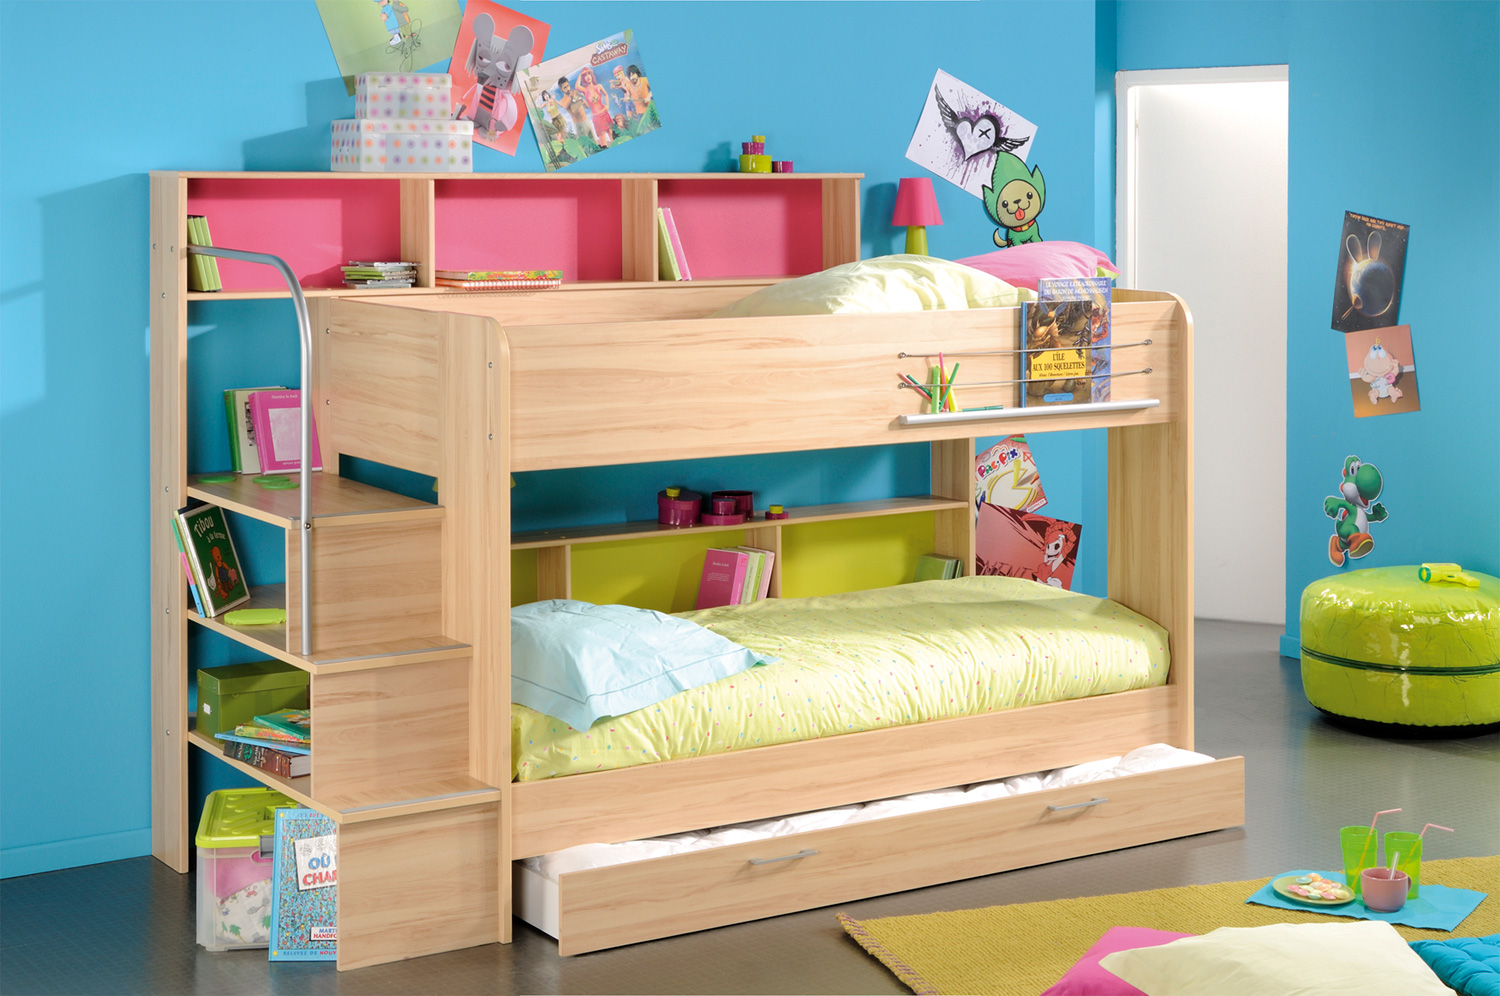 Space saving stylish bunk beds for your home Futon for kids room